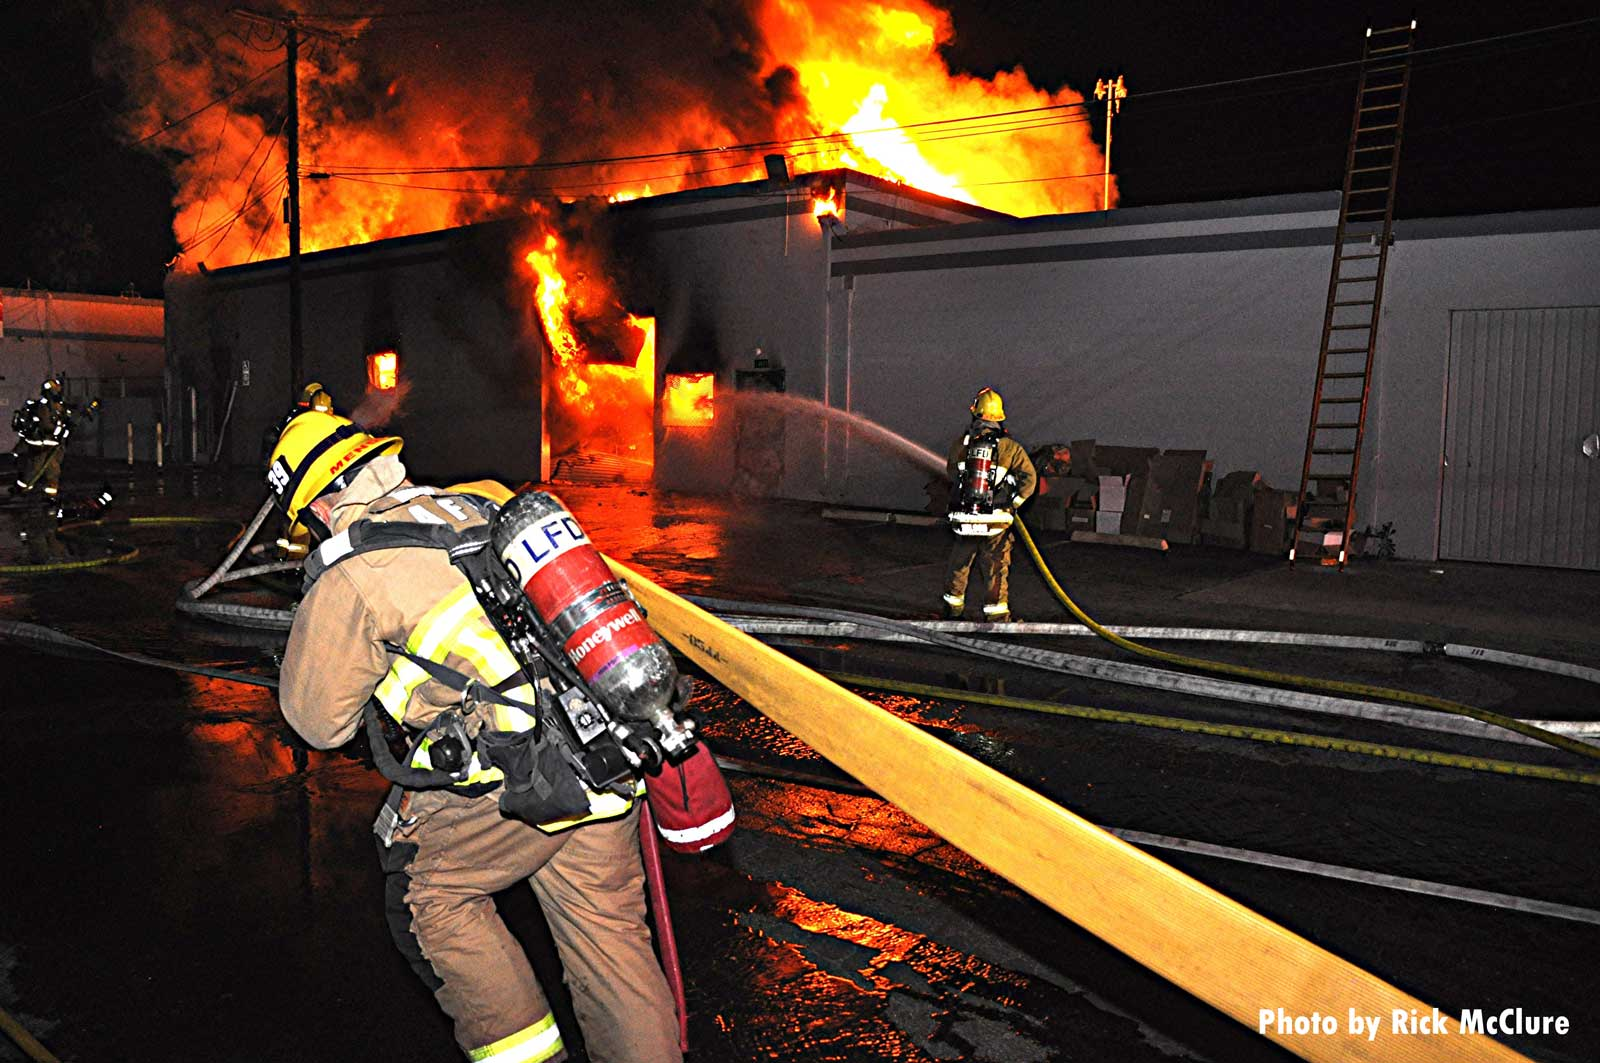 LAFD firefighter pulls a hoseline at the scene of the fire